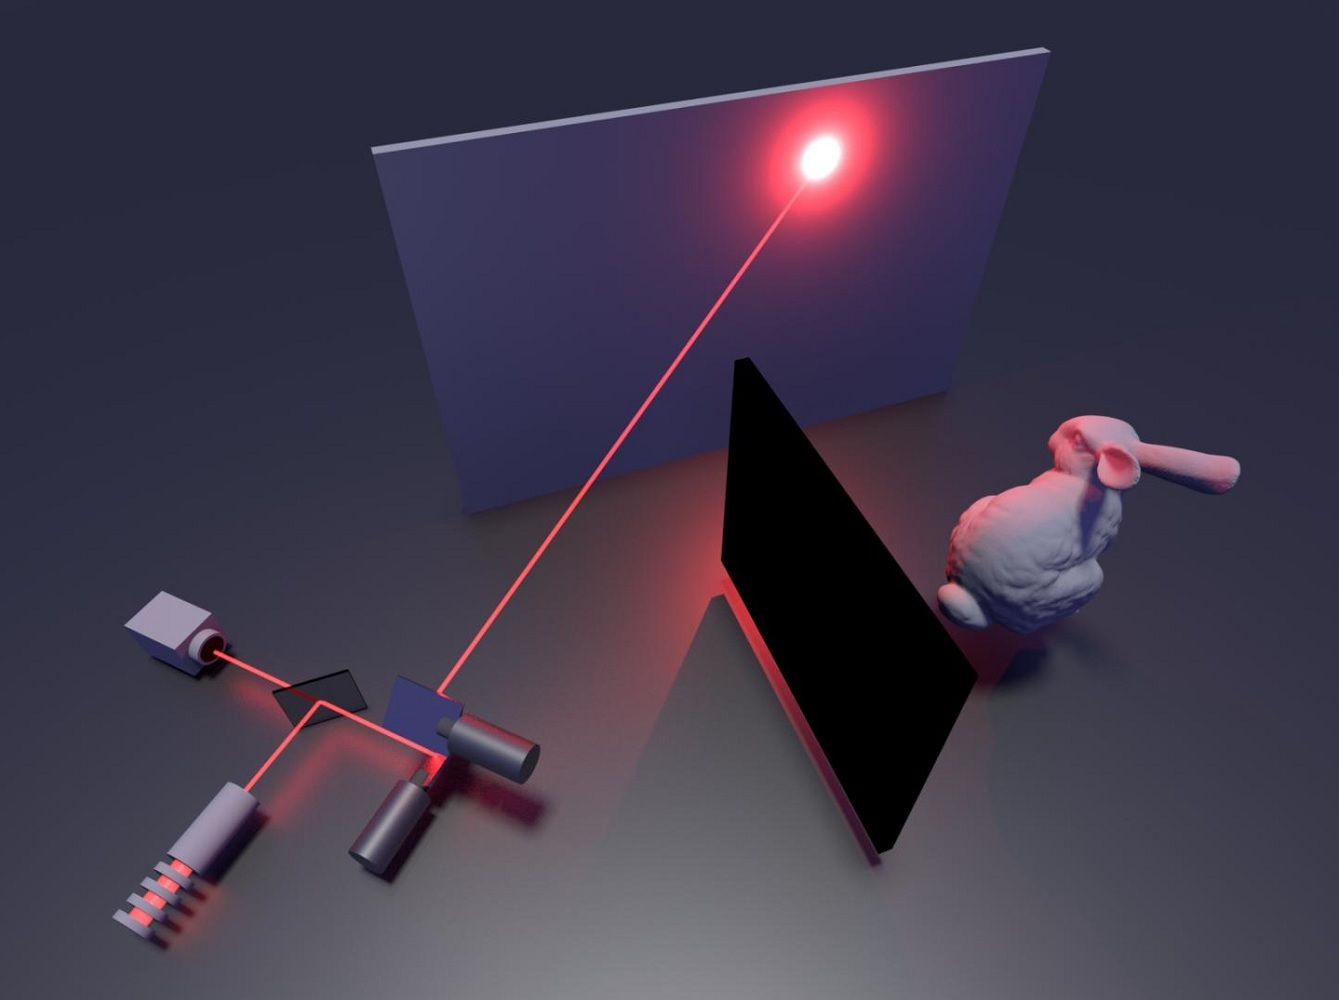 Illustration of the non-line-of-sight imaging system